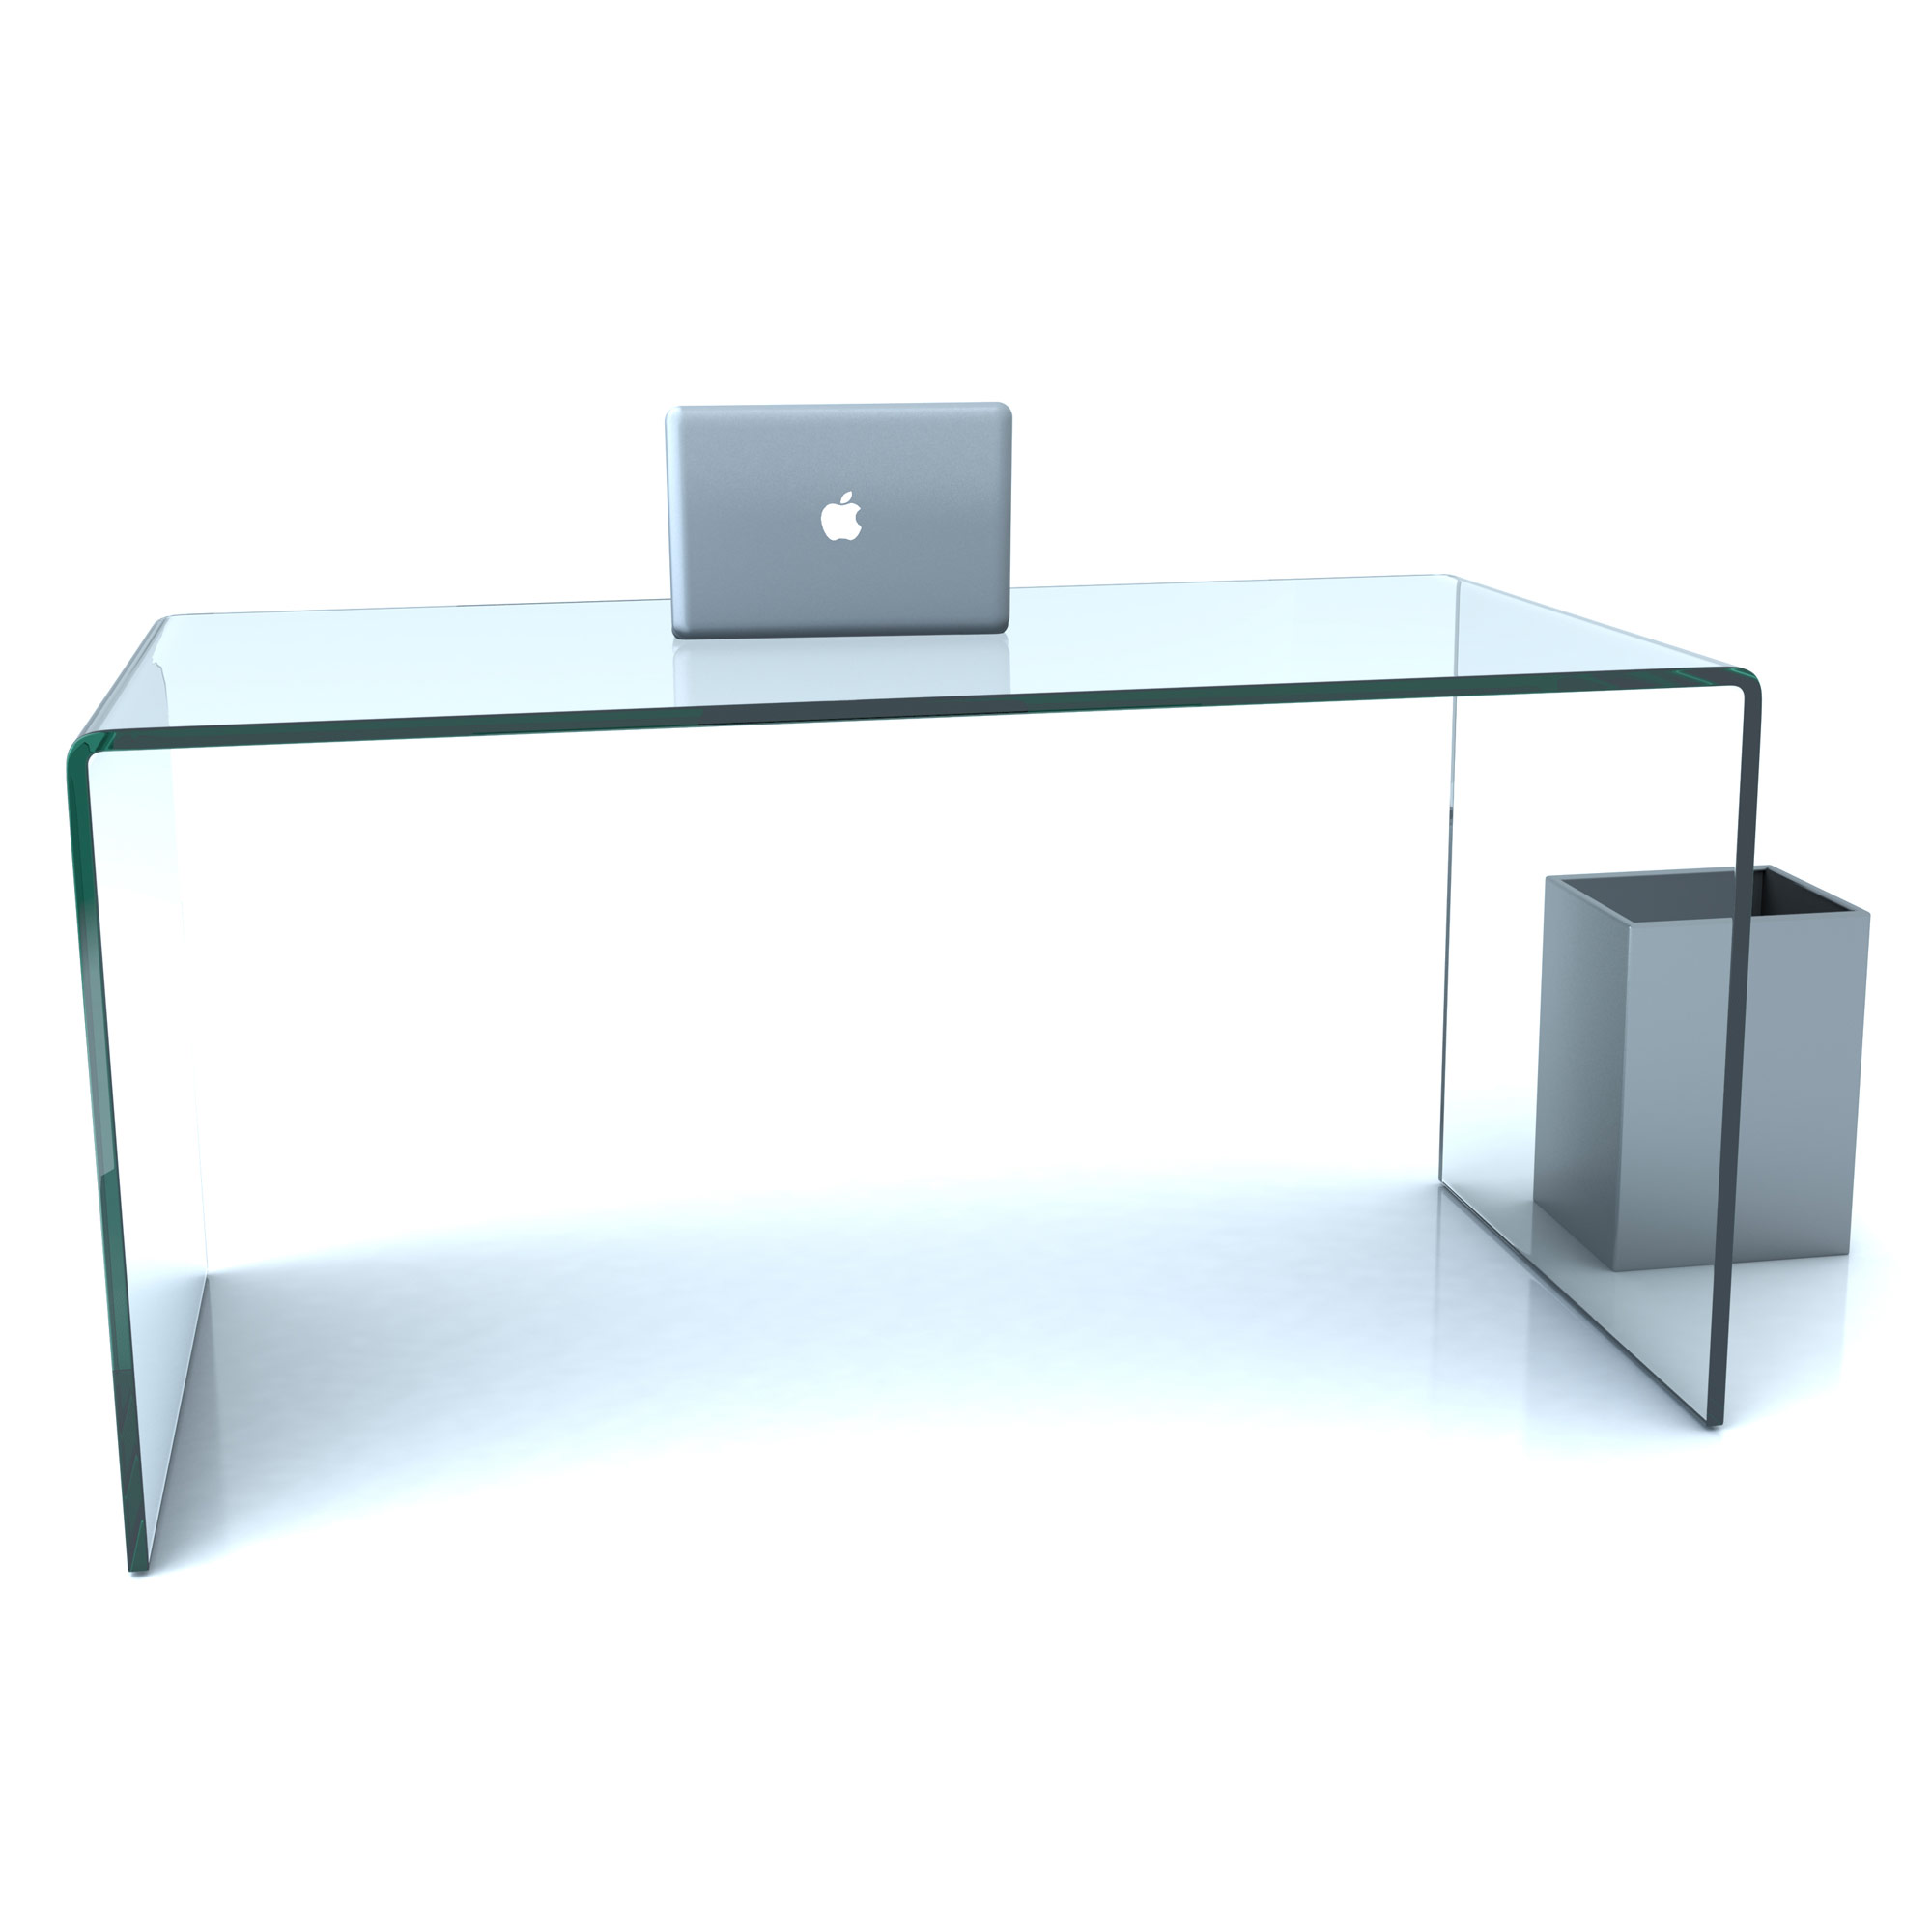 design glas schreibtisch 19mm echtglas b t h 140x32x73cm glas tisch ebay. Black Bedroom Furniture Sets. Home Design Ideas